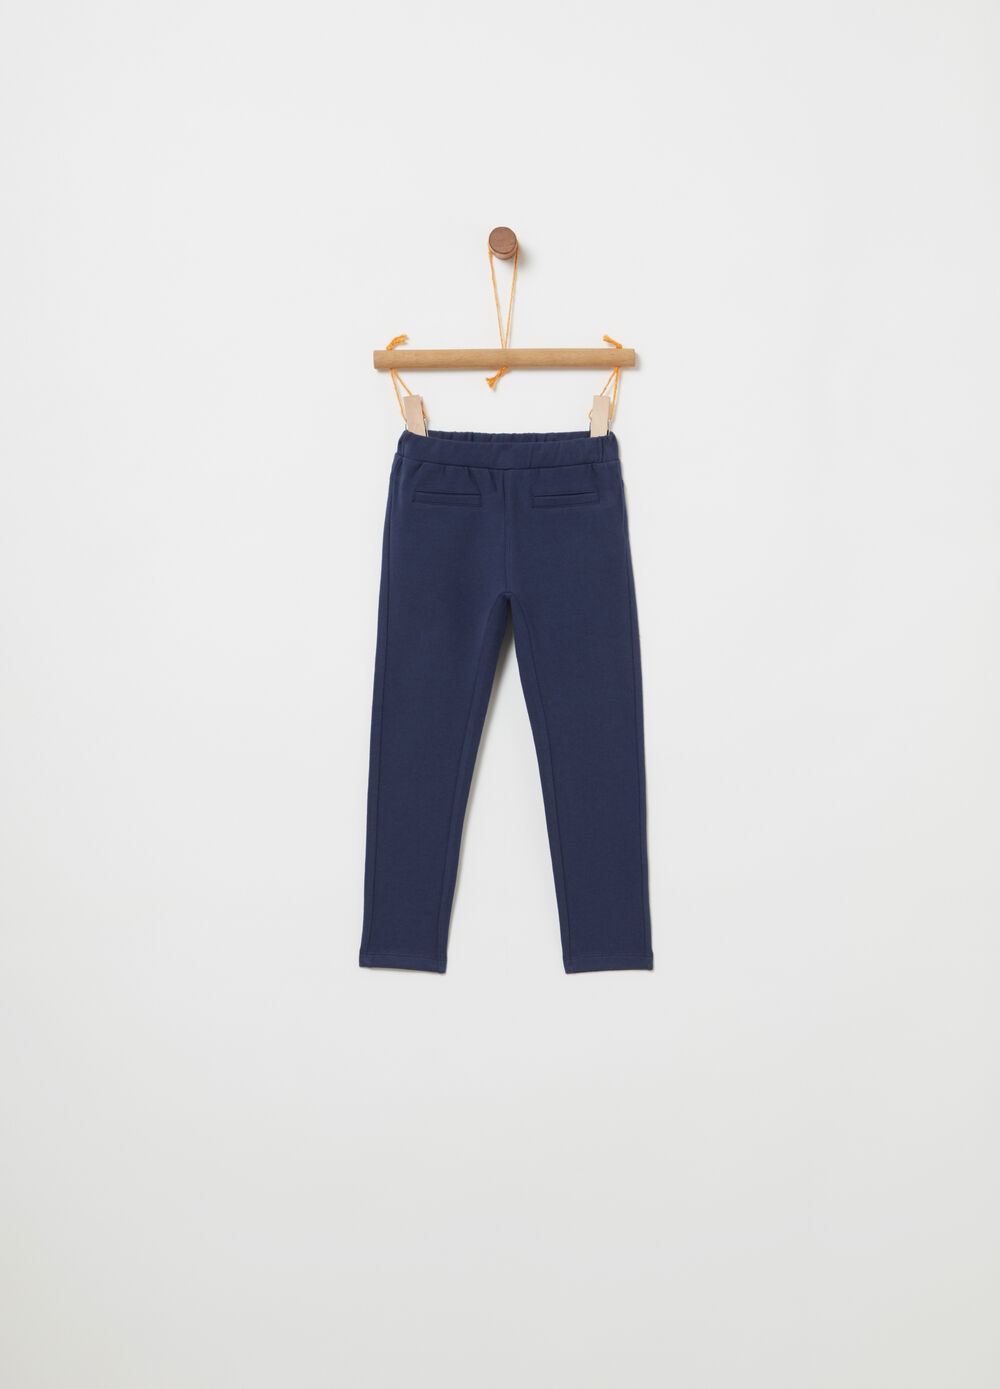 Non-gauzed lightweight fleece trousers